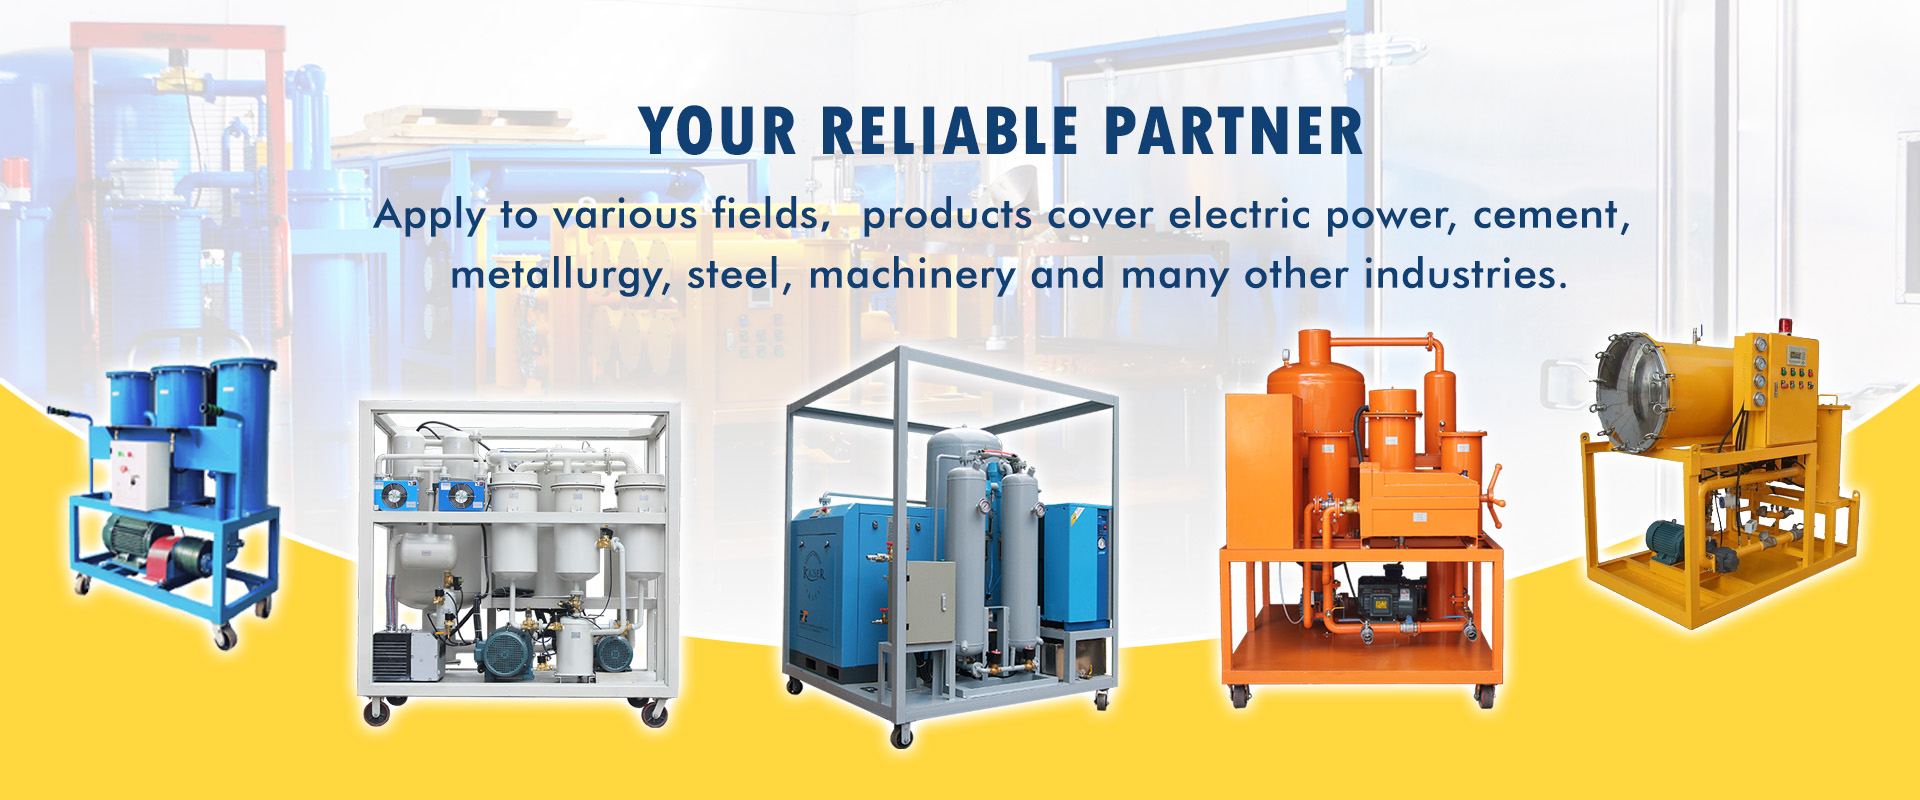 PureTech products are available for various industries, transmission, power generation, cement, factory, vehicles, vessels, steel factory, mining, etc.